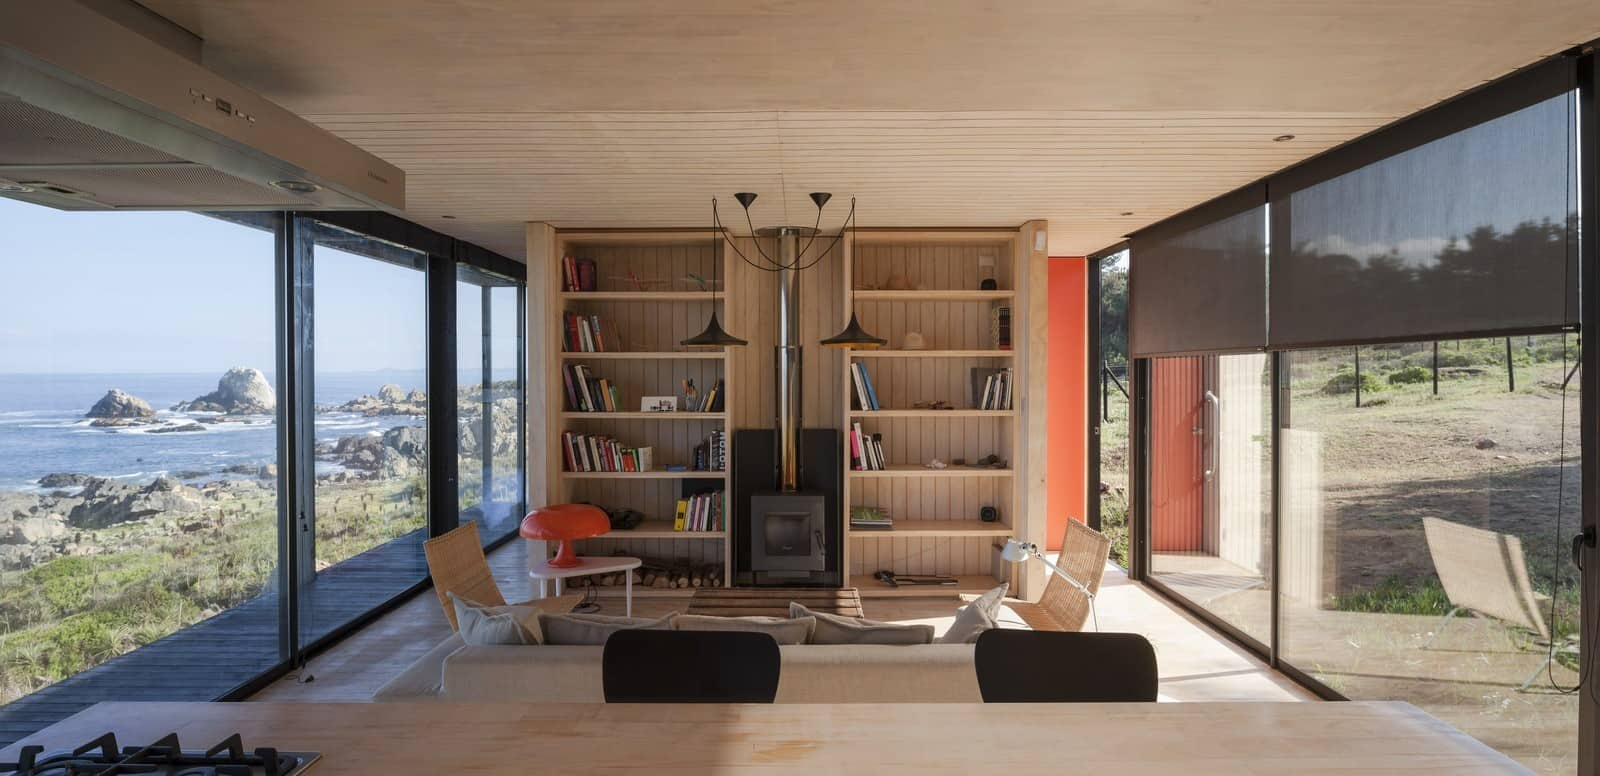 Remote Transportable Modular House in Chile by Felipe Assadi 13